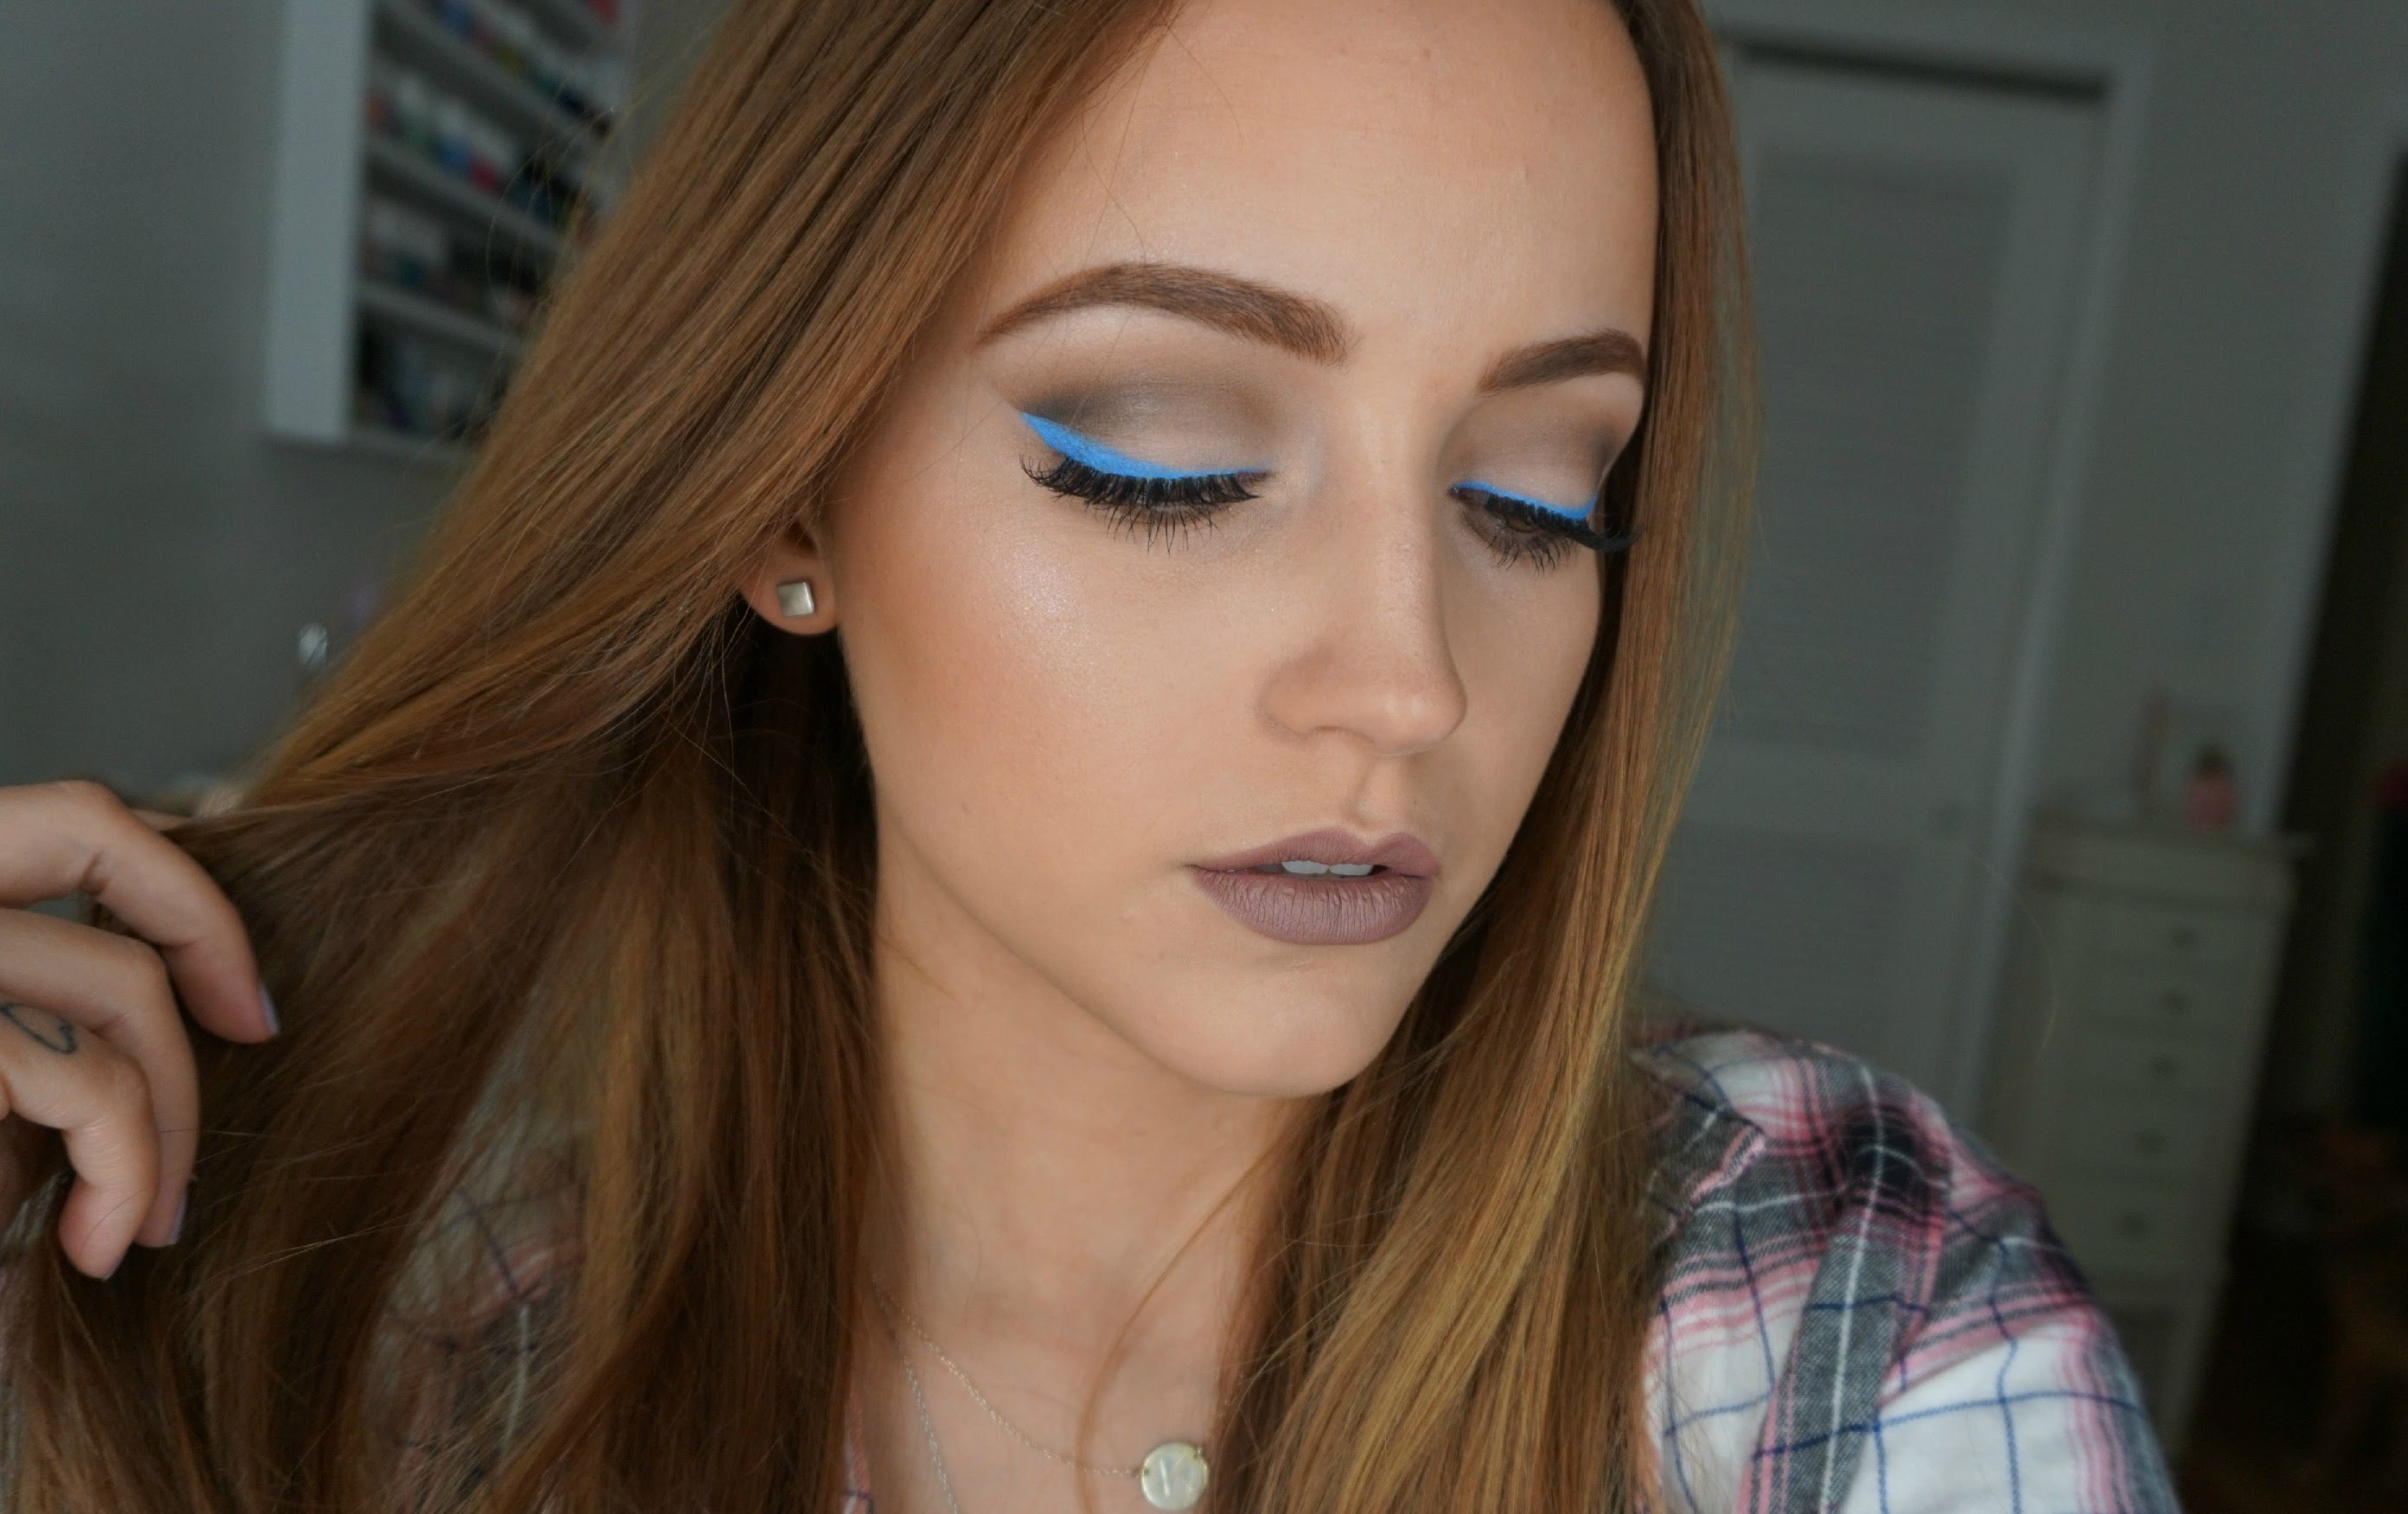 15 Makeup Looks For People Who Are Afraid To Experiment, But Want To Try — VIDEOS